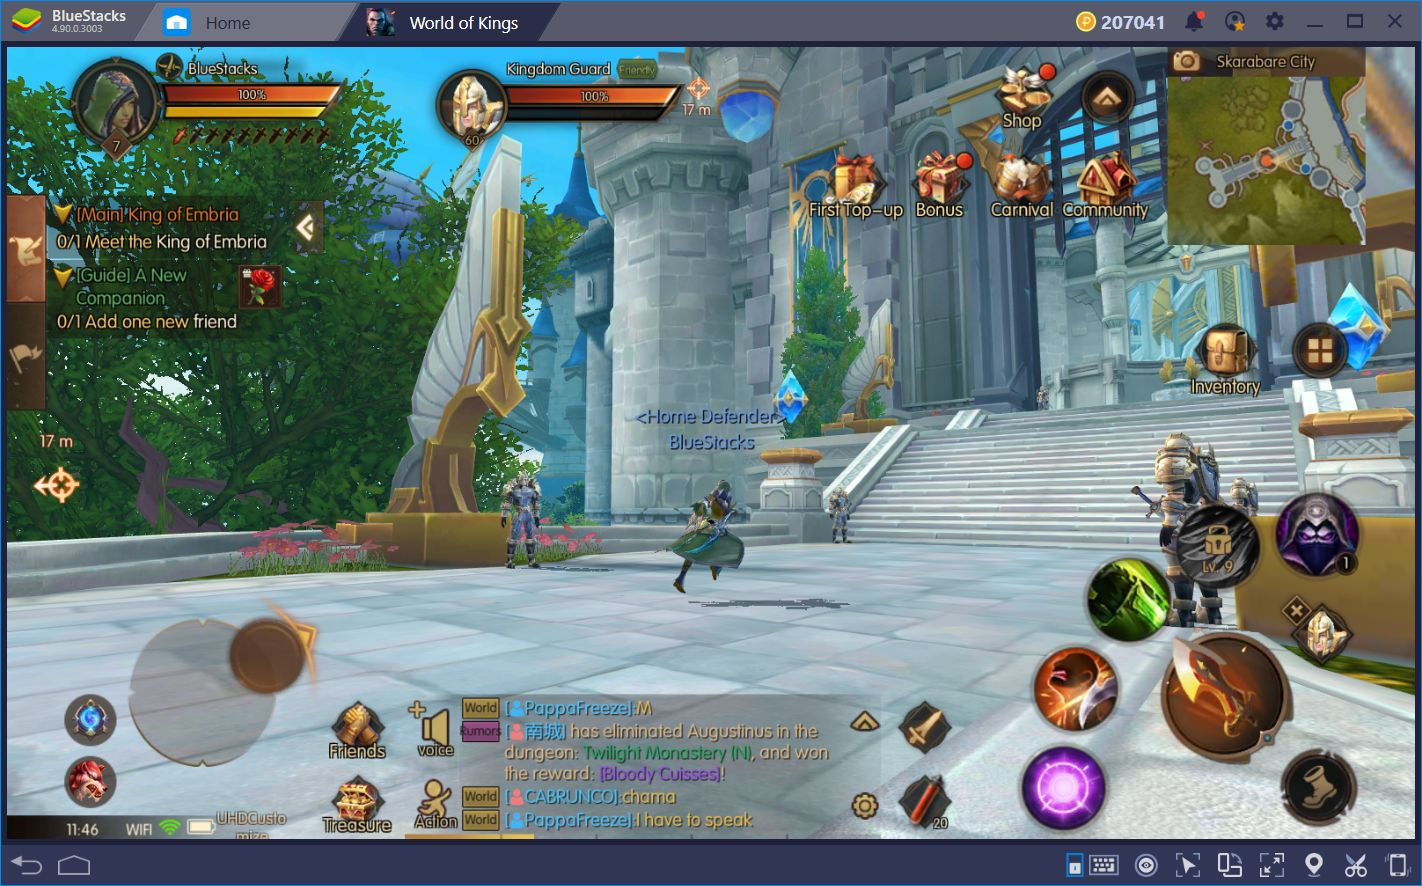 The Best Action RPGs to Play on BlueStacks in 2019